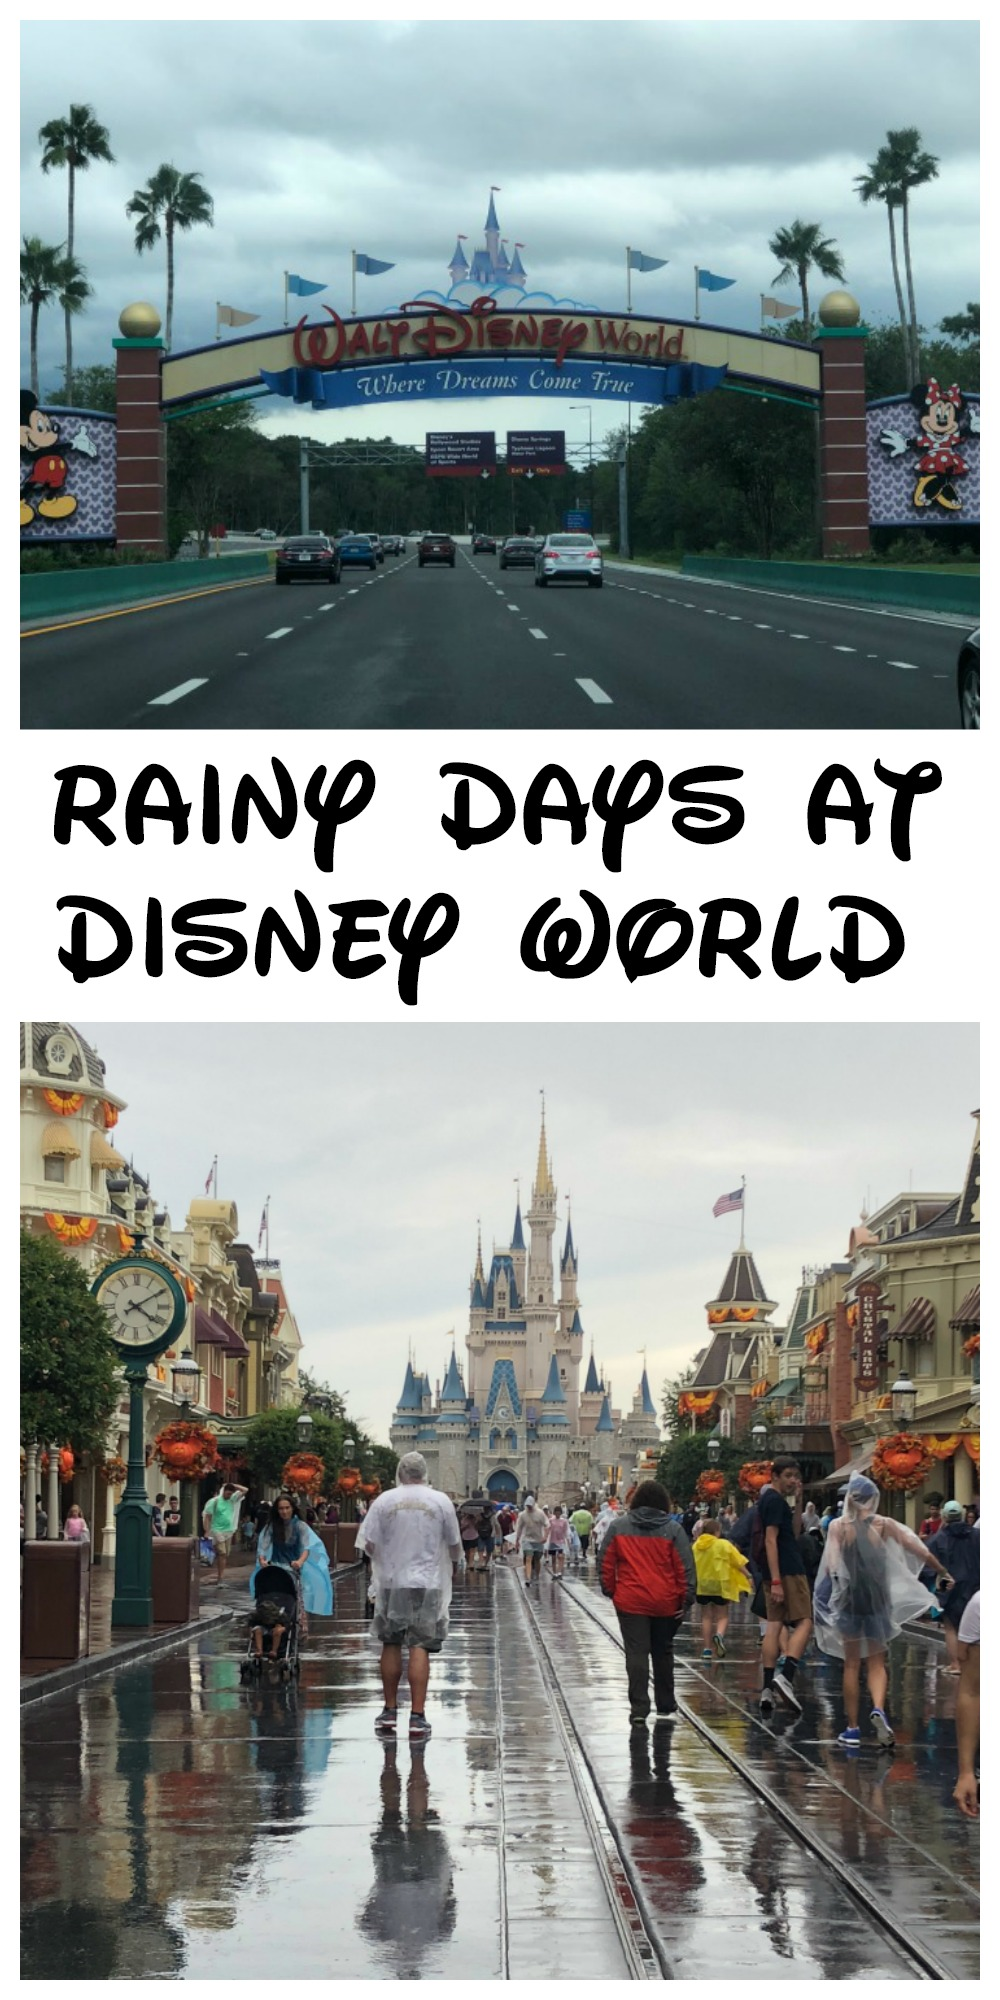 Cut down on the likelihood that your family will have your Disney vacation rained out with these helpful tips for how to beat the rain at Walt Disney World!